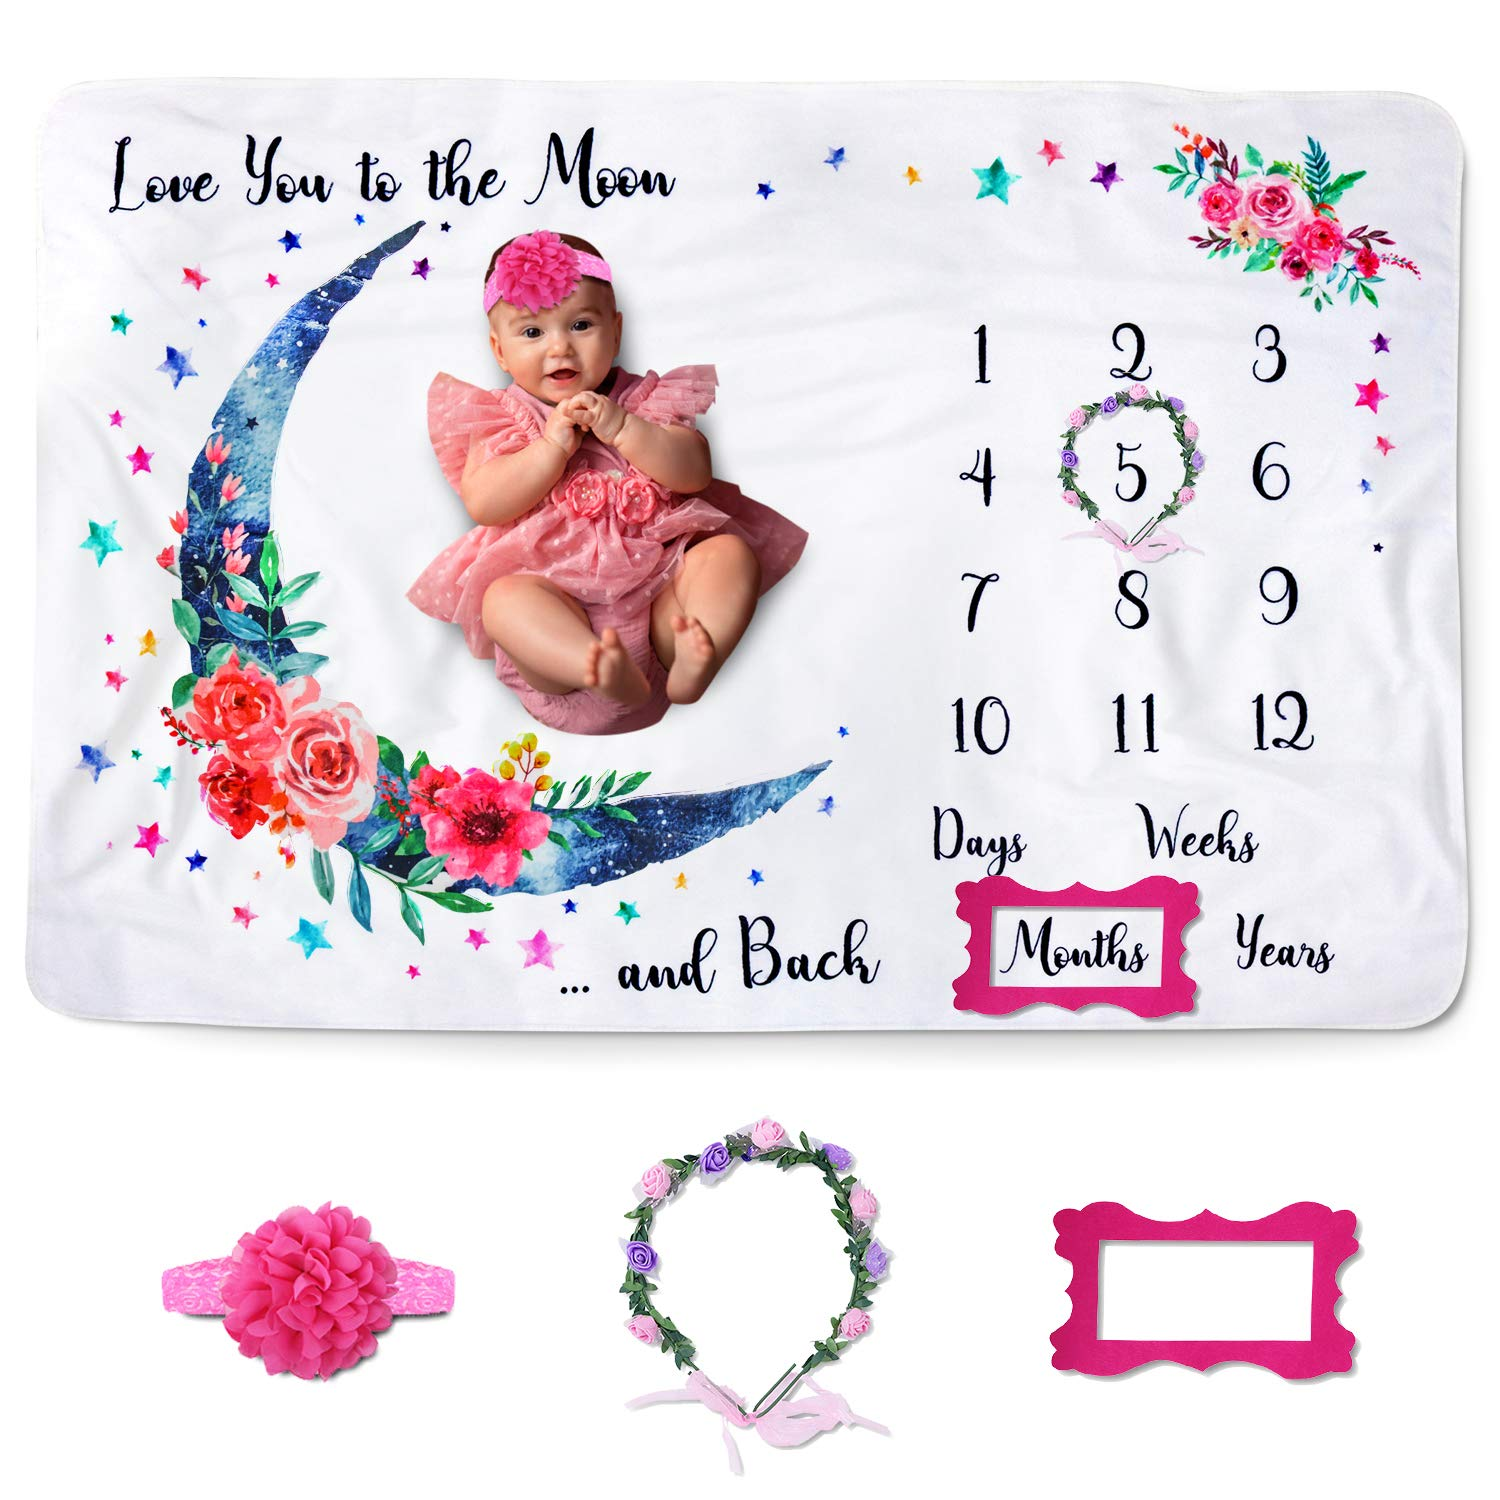 "Jamie&Jayden Baby Monthly Milestone Blanket for Baby Girl, Photo Blanket for Newborn and Baby Pictures. Includes Headband, Wreath and Frame 60""x40"